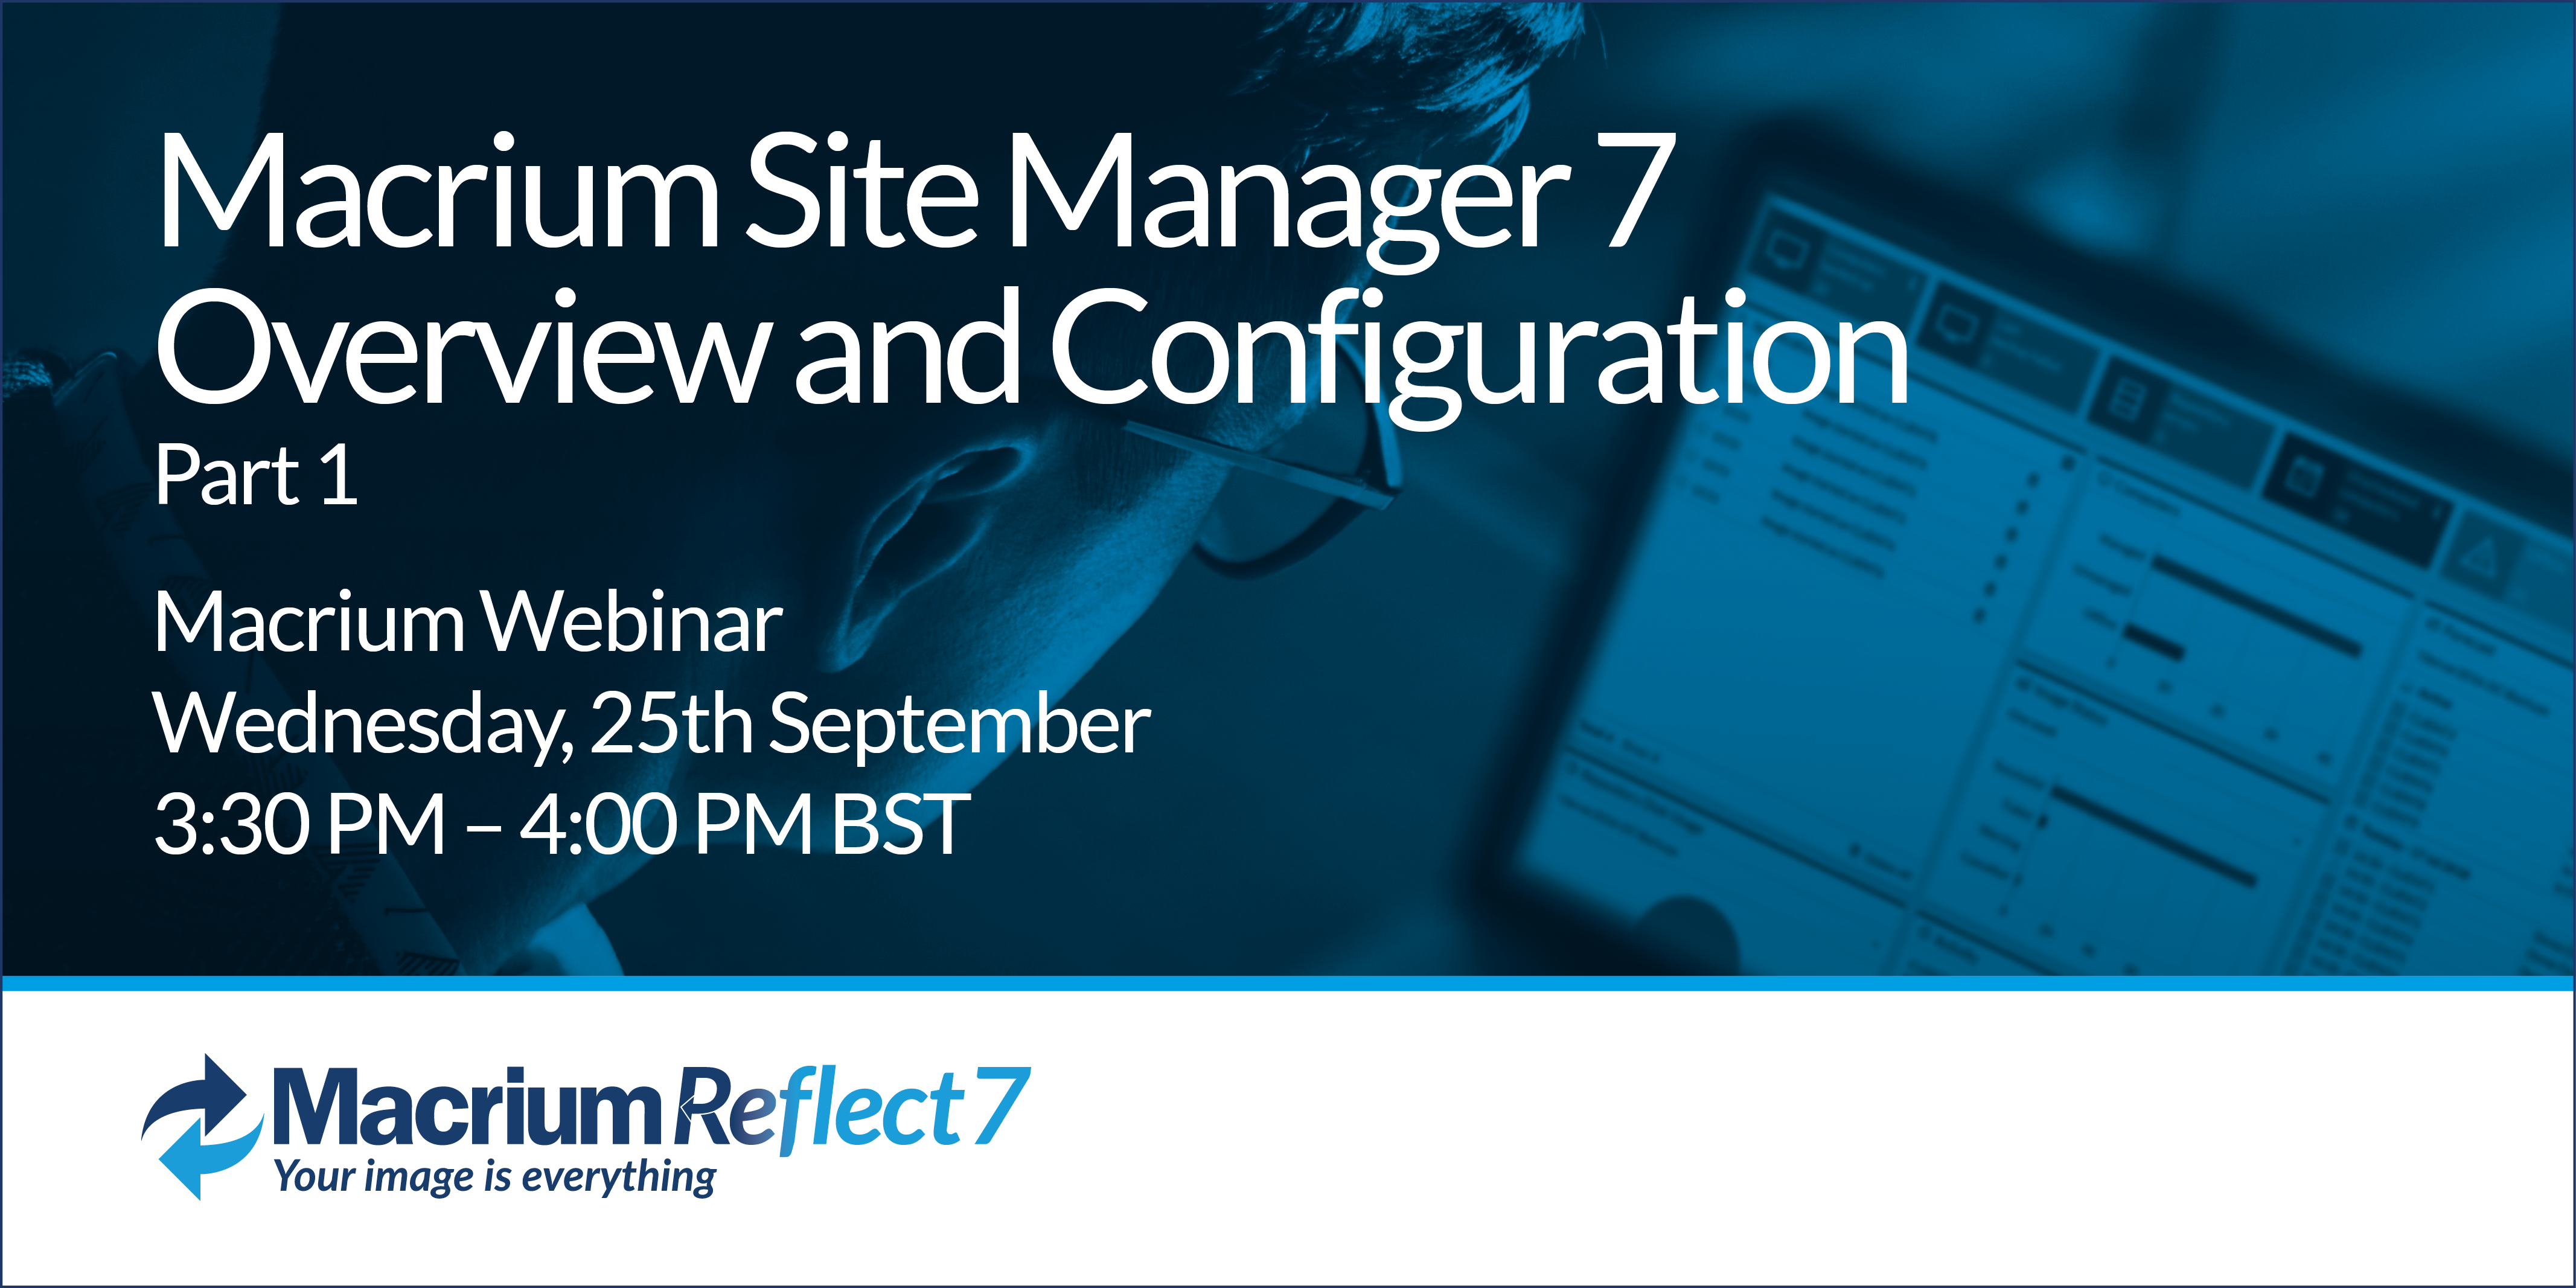 Macrium Site Manager 7 Overview and Configuration